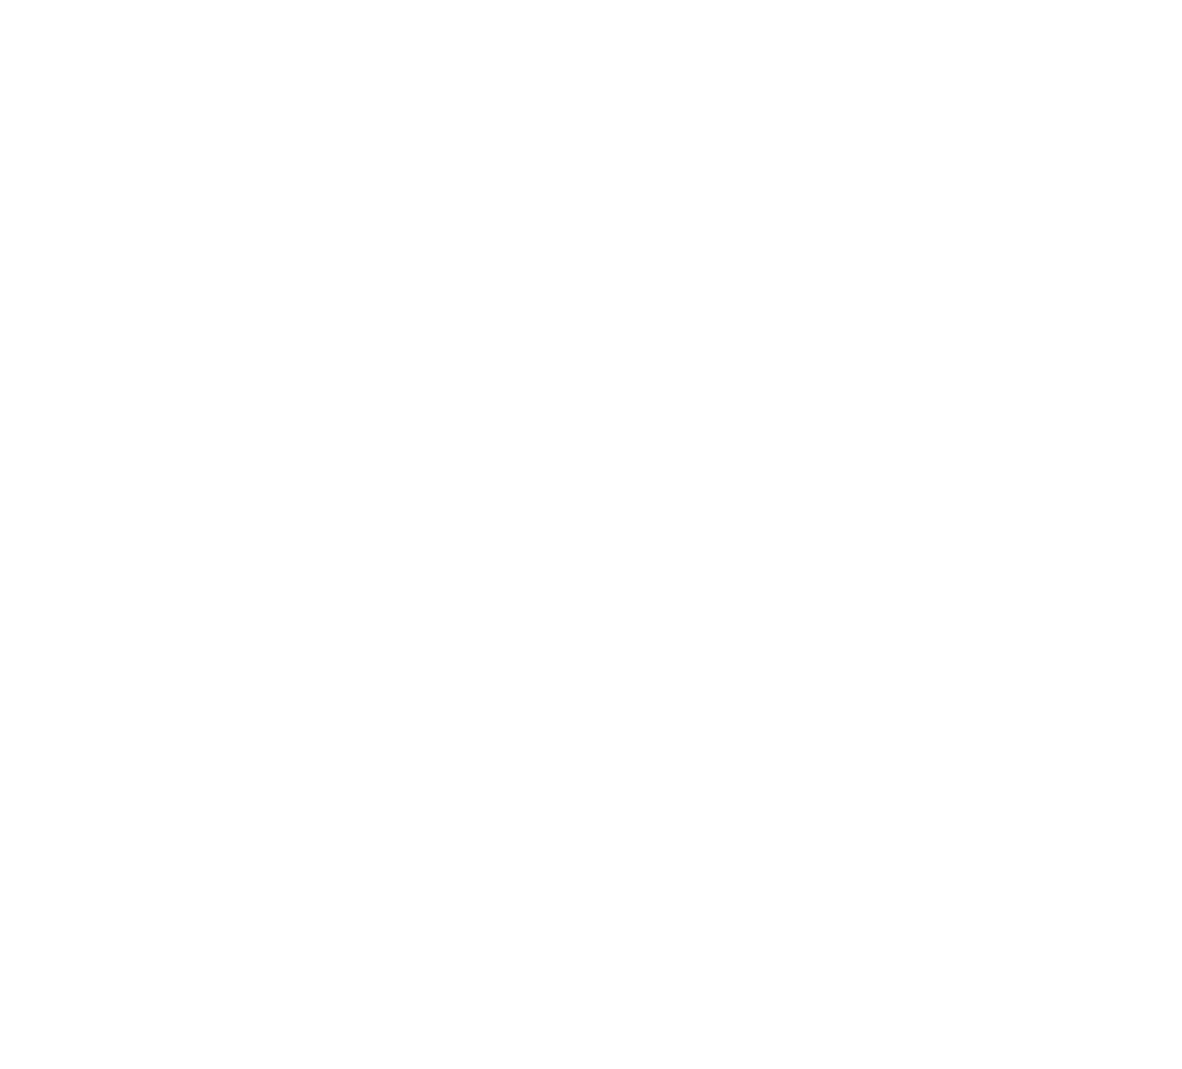 LOGO_NEXT_STEP_MONOCHROME